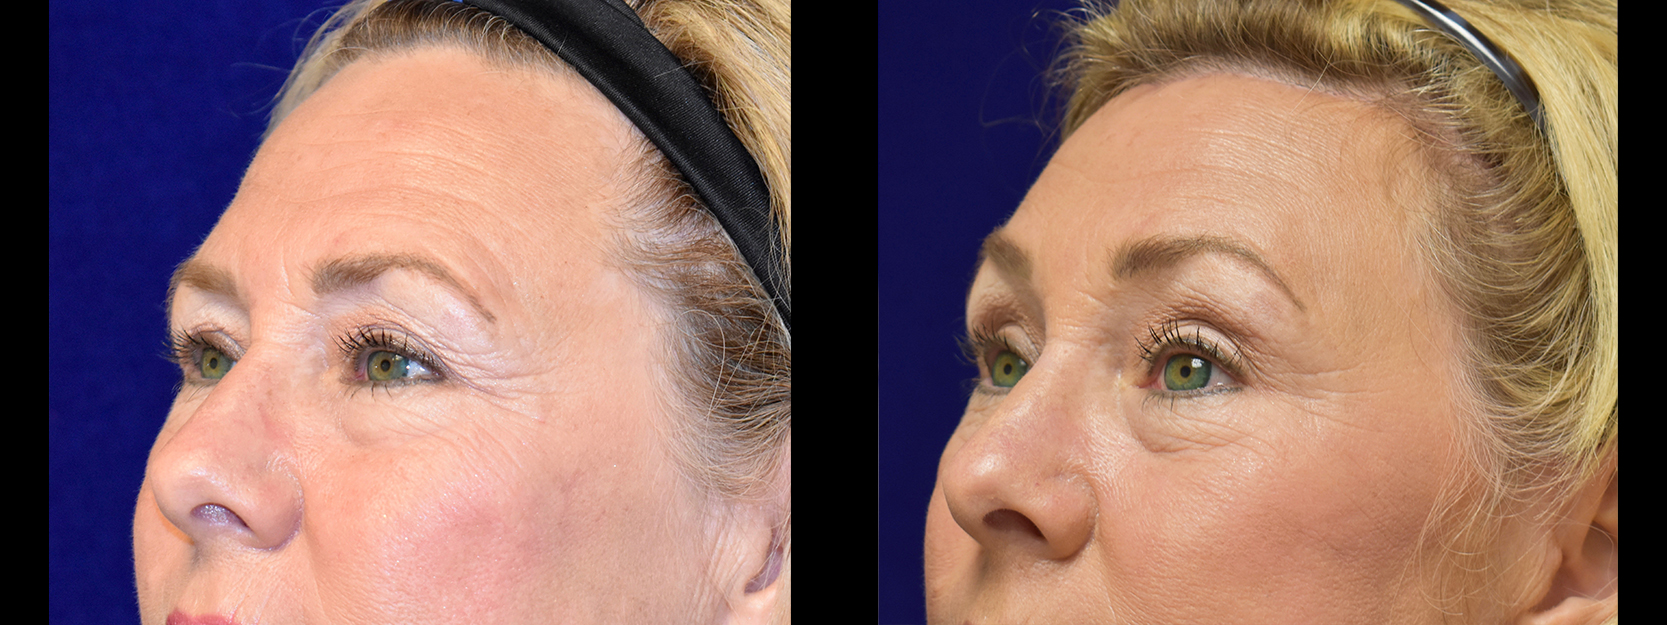 Left 3/4 View - Browlift with Upper and Lower Eyelid Surgery